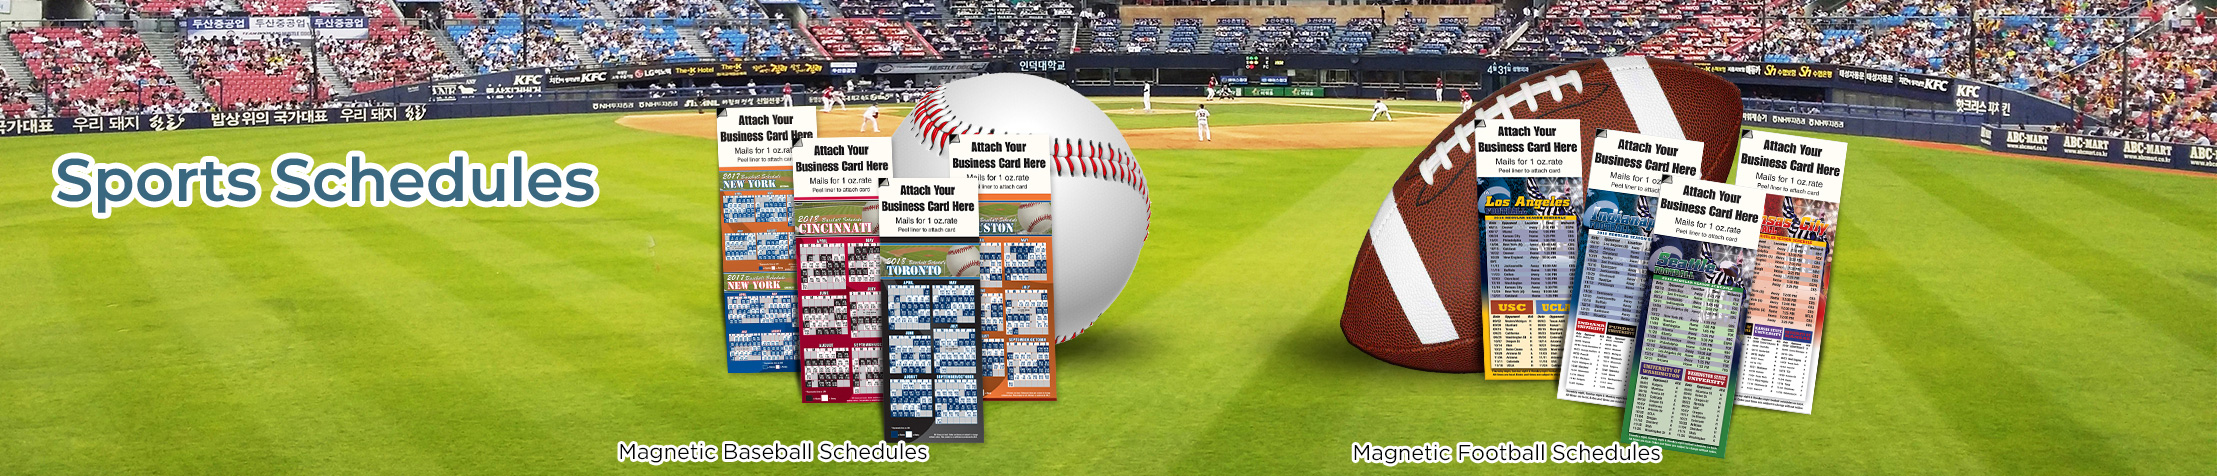 Realty South Real Estate Sports Schedules - Realty South custom sports schedule magnets | BestPrintBuy.com